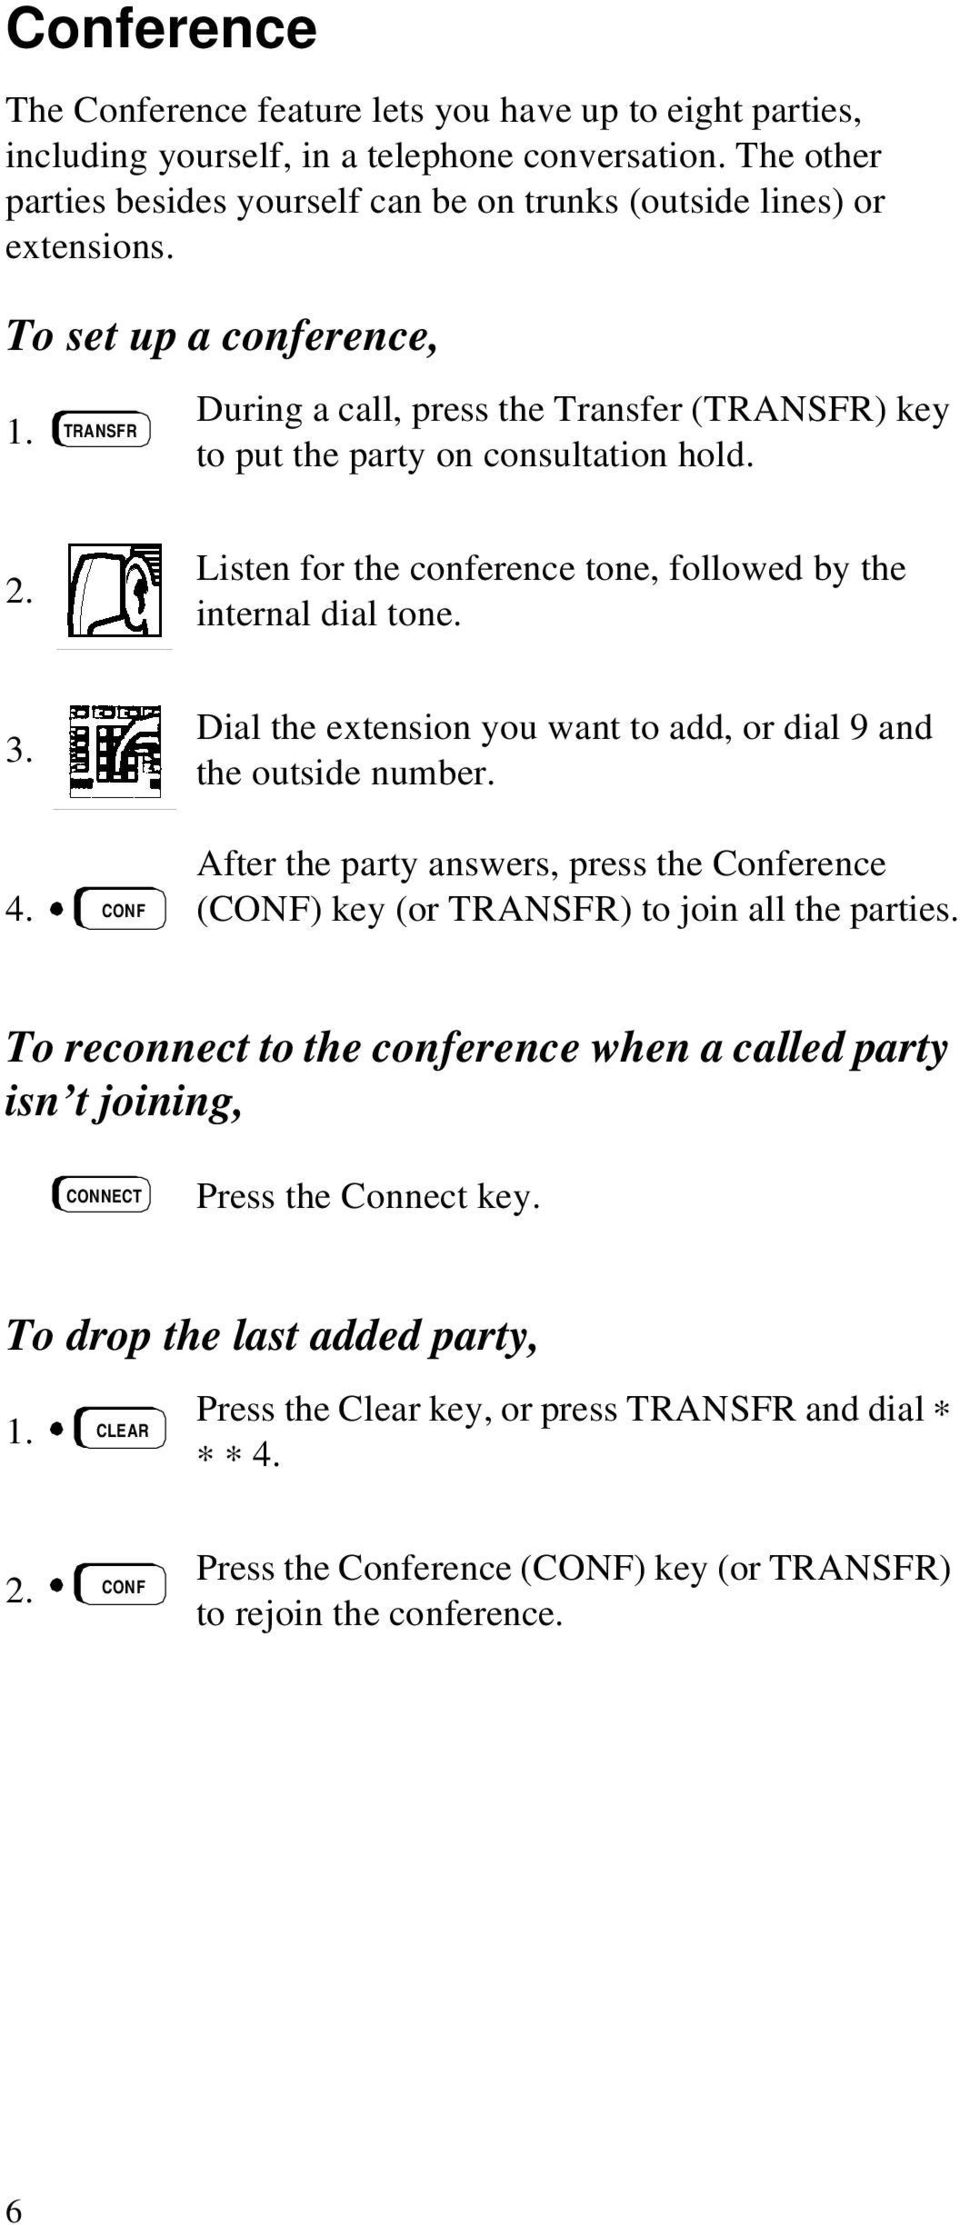 CONF Dial the extension you want to add, or dial 9 and the outside number. After the party answers, press the Conference (CONF) key (or TRANSFR) to join all the parties.